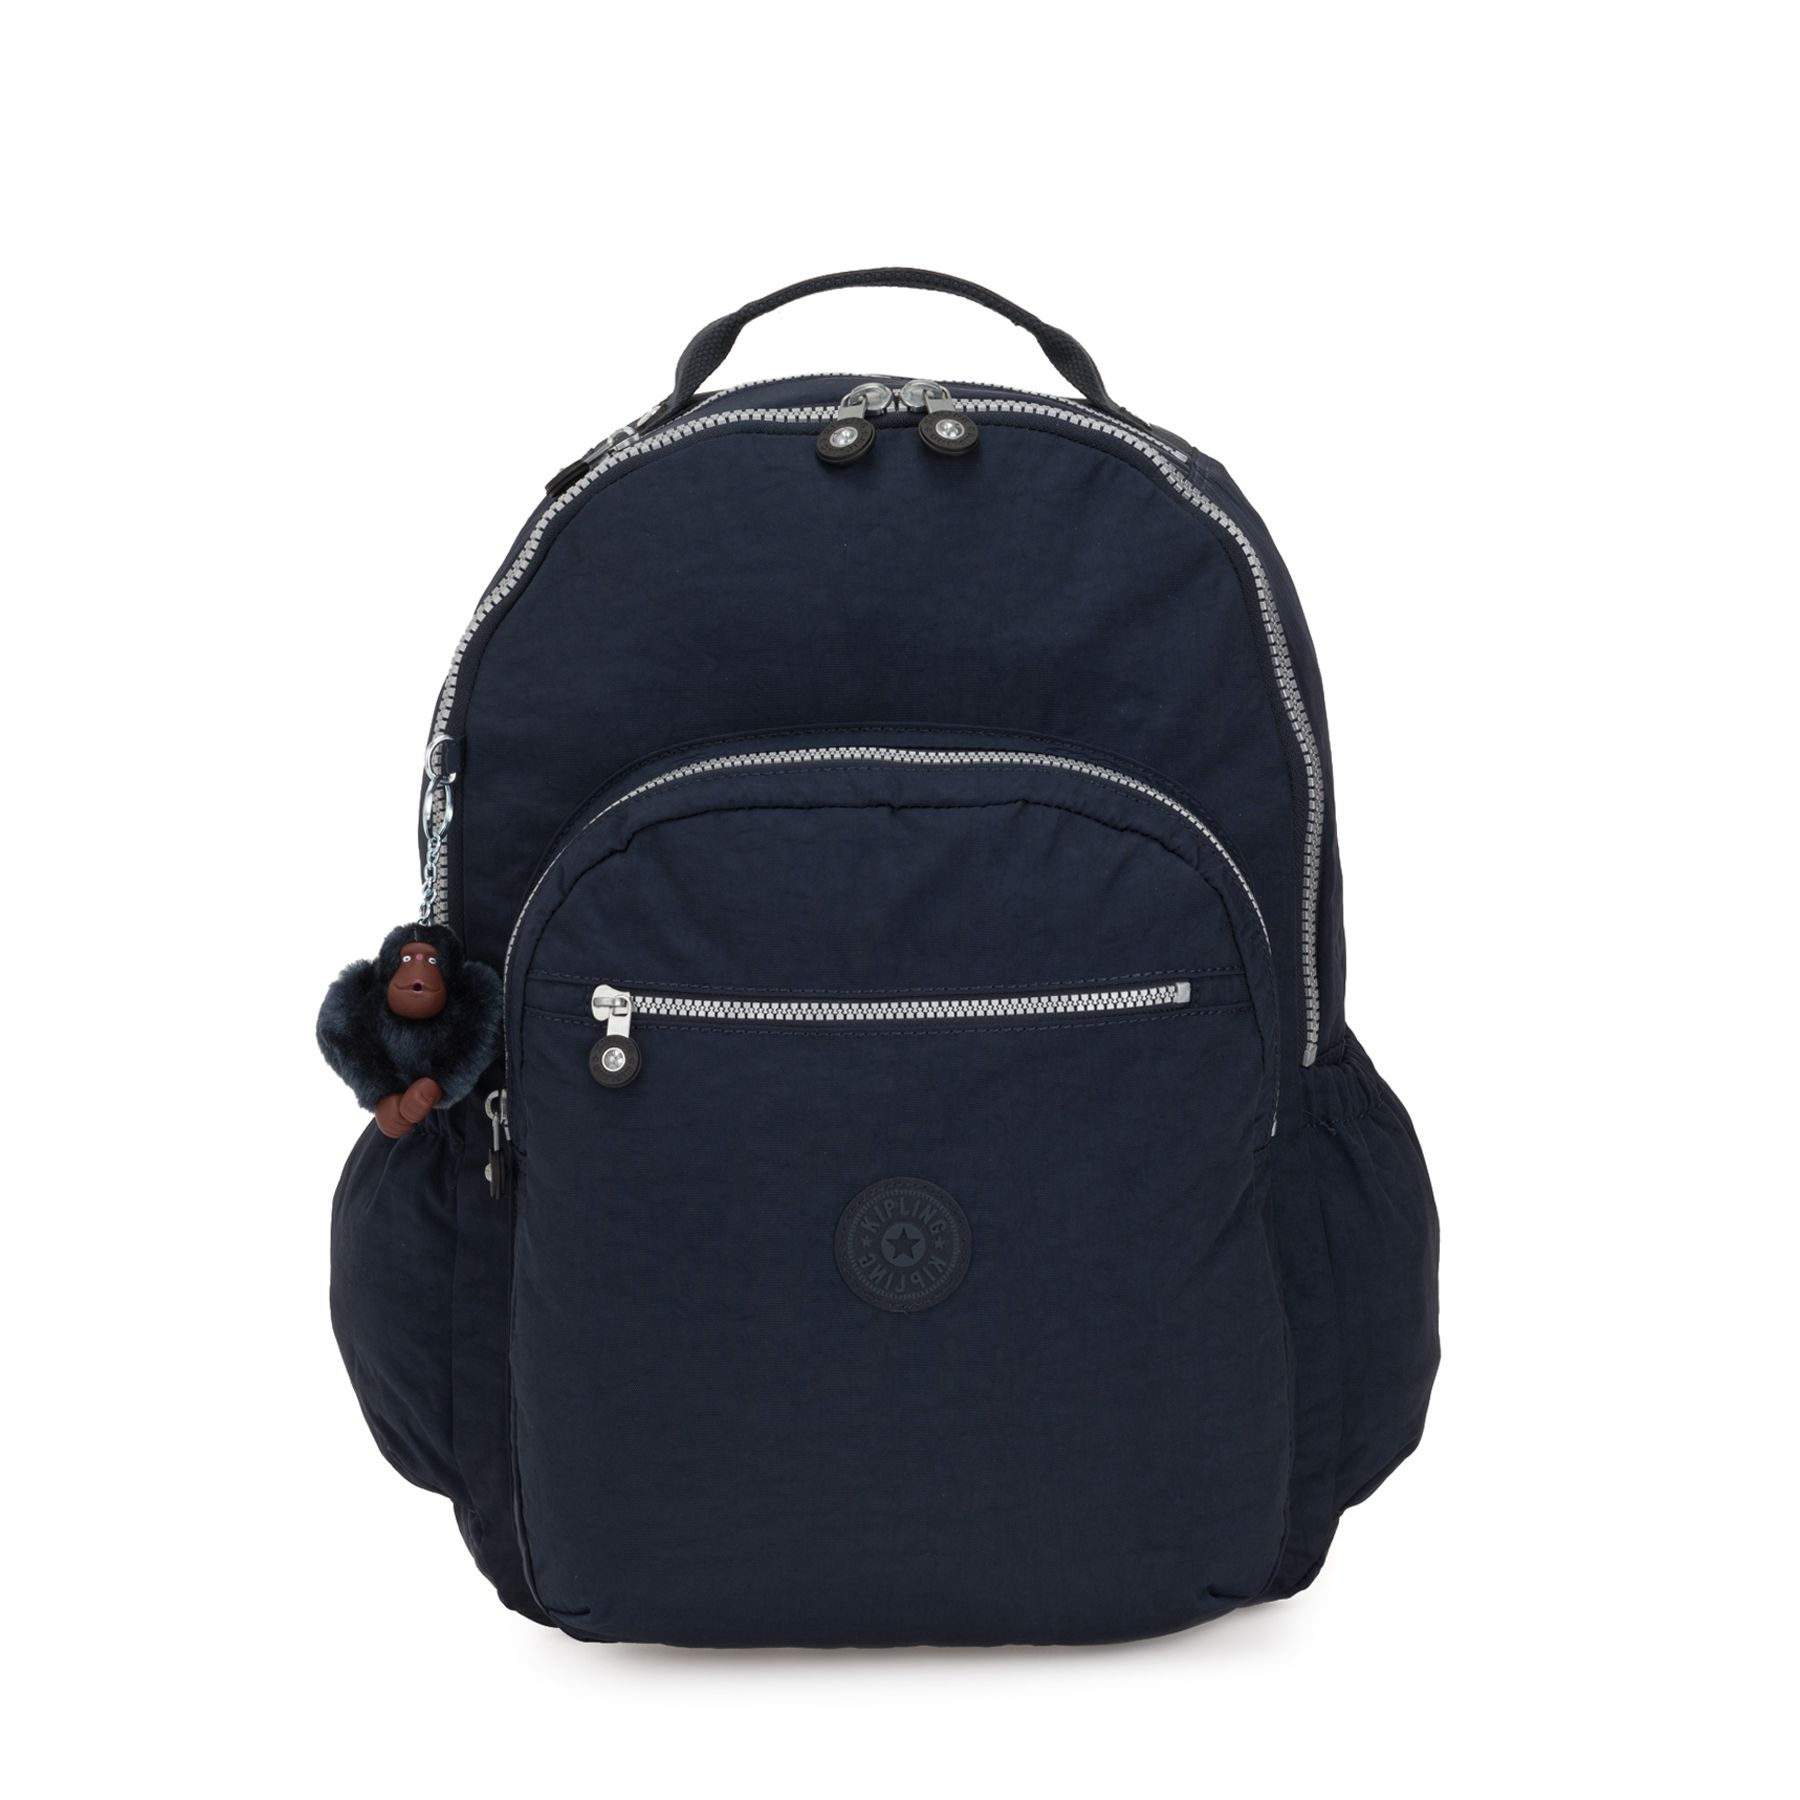 SEOUL GO XL SCHOOL BAGS by Kipling - Front view